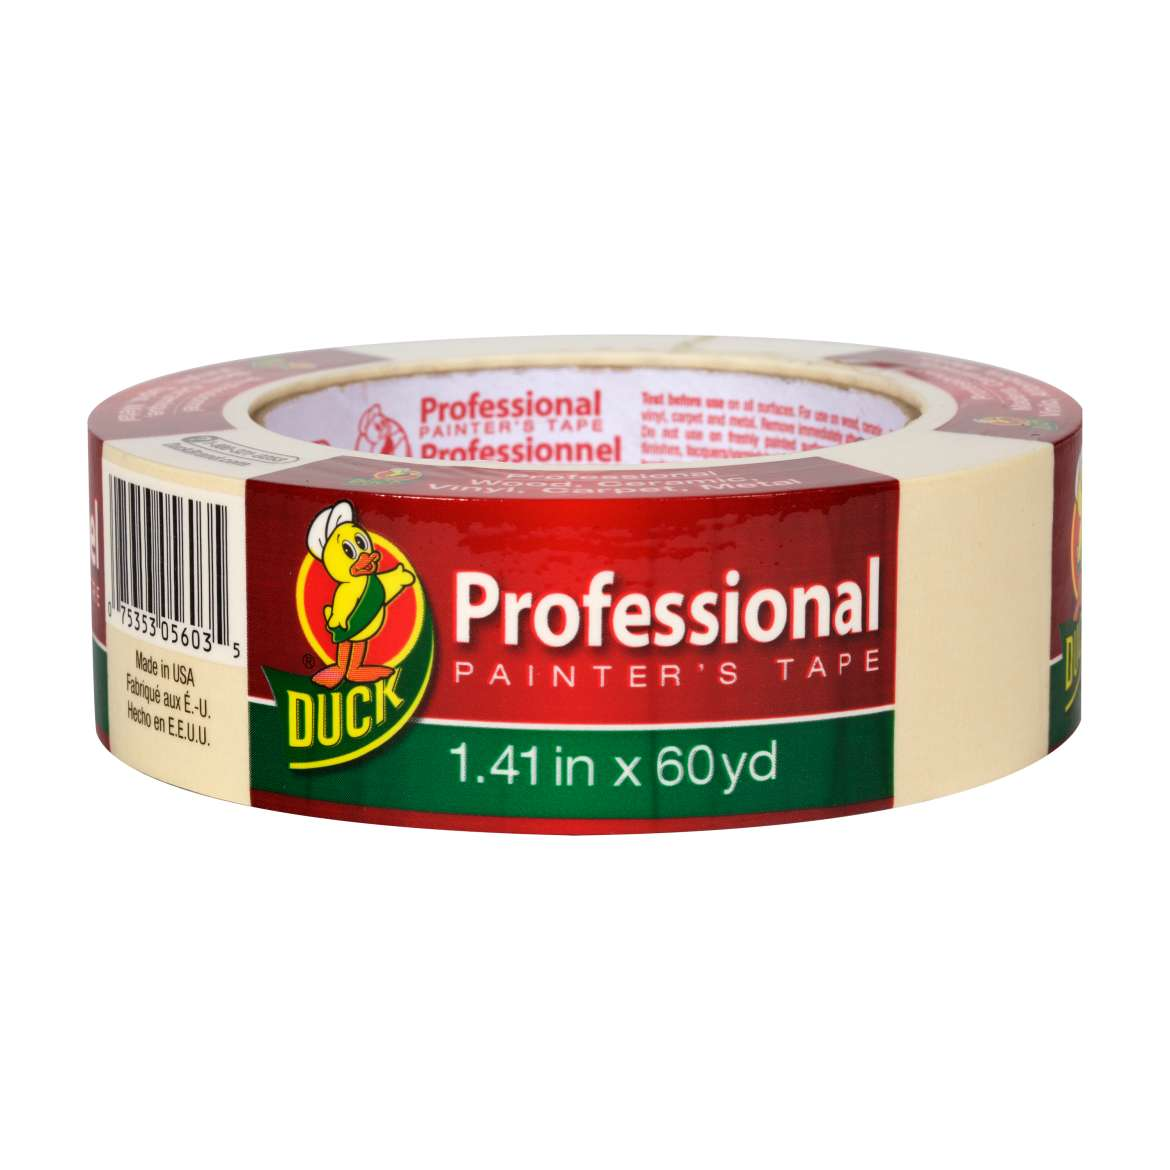 Duck® Brand Professional Painter's Tape - Beige, 1.41 in. x 60 yd. Image